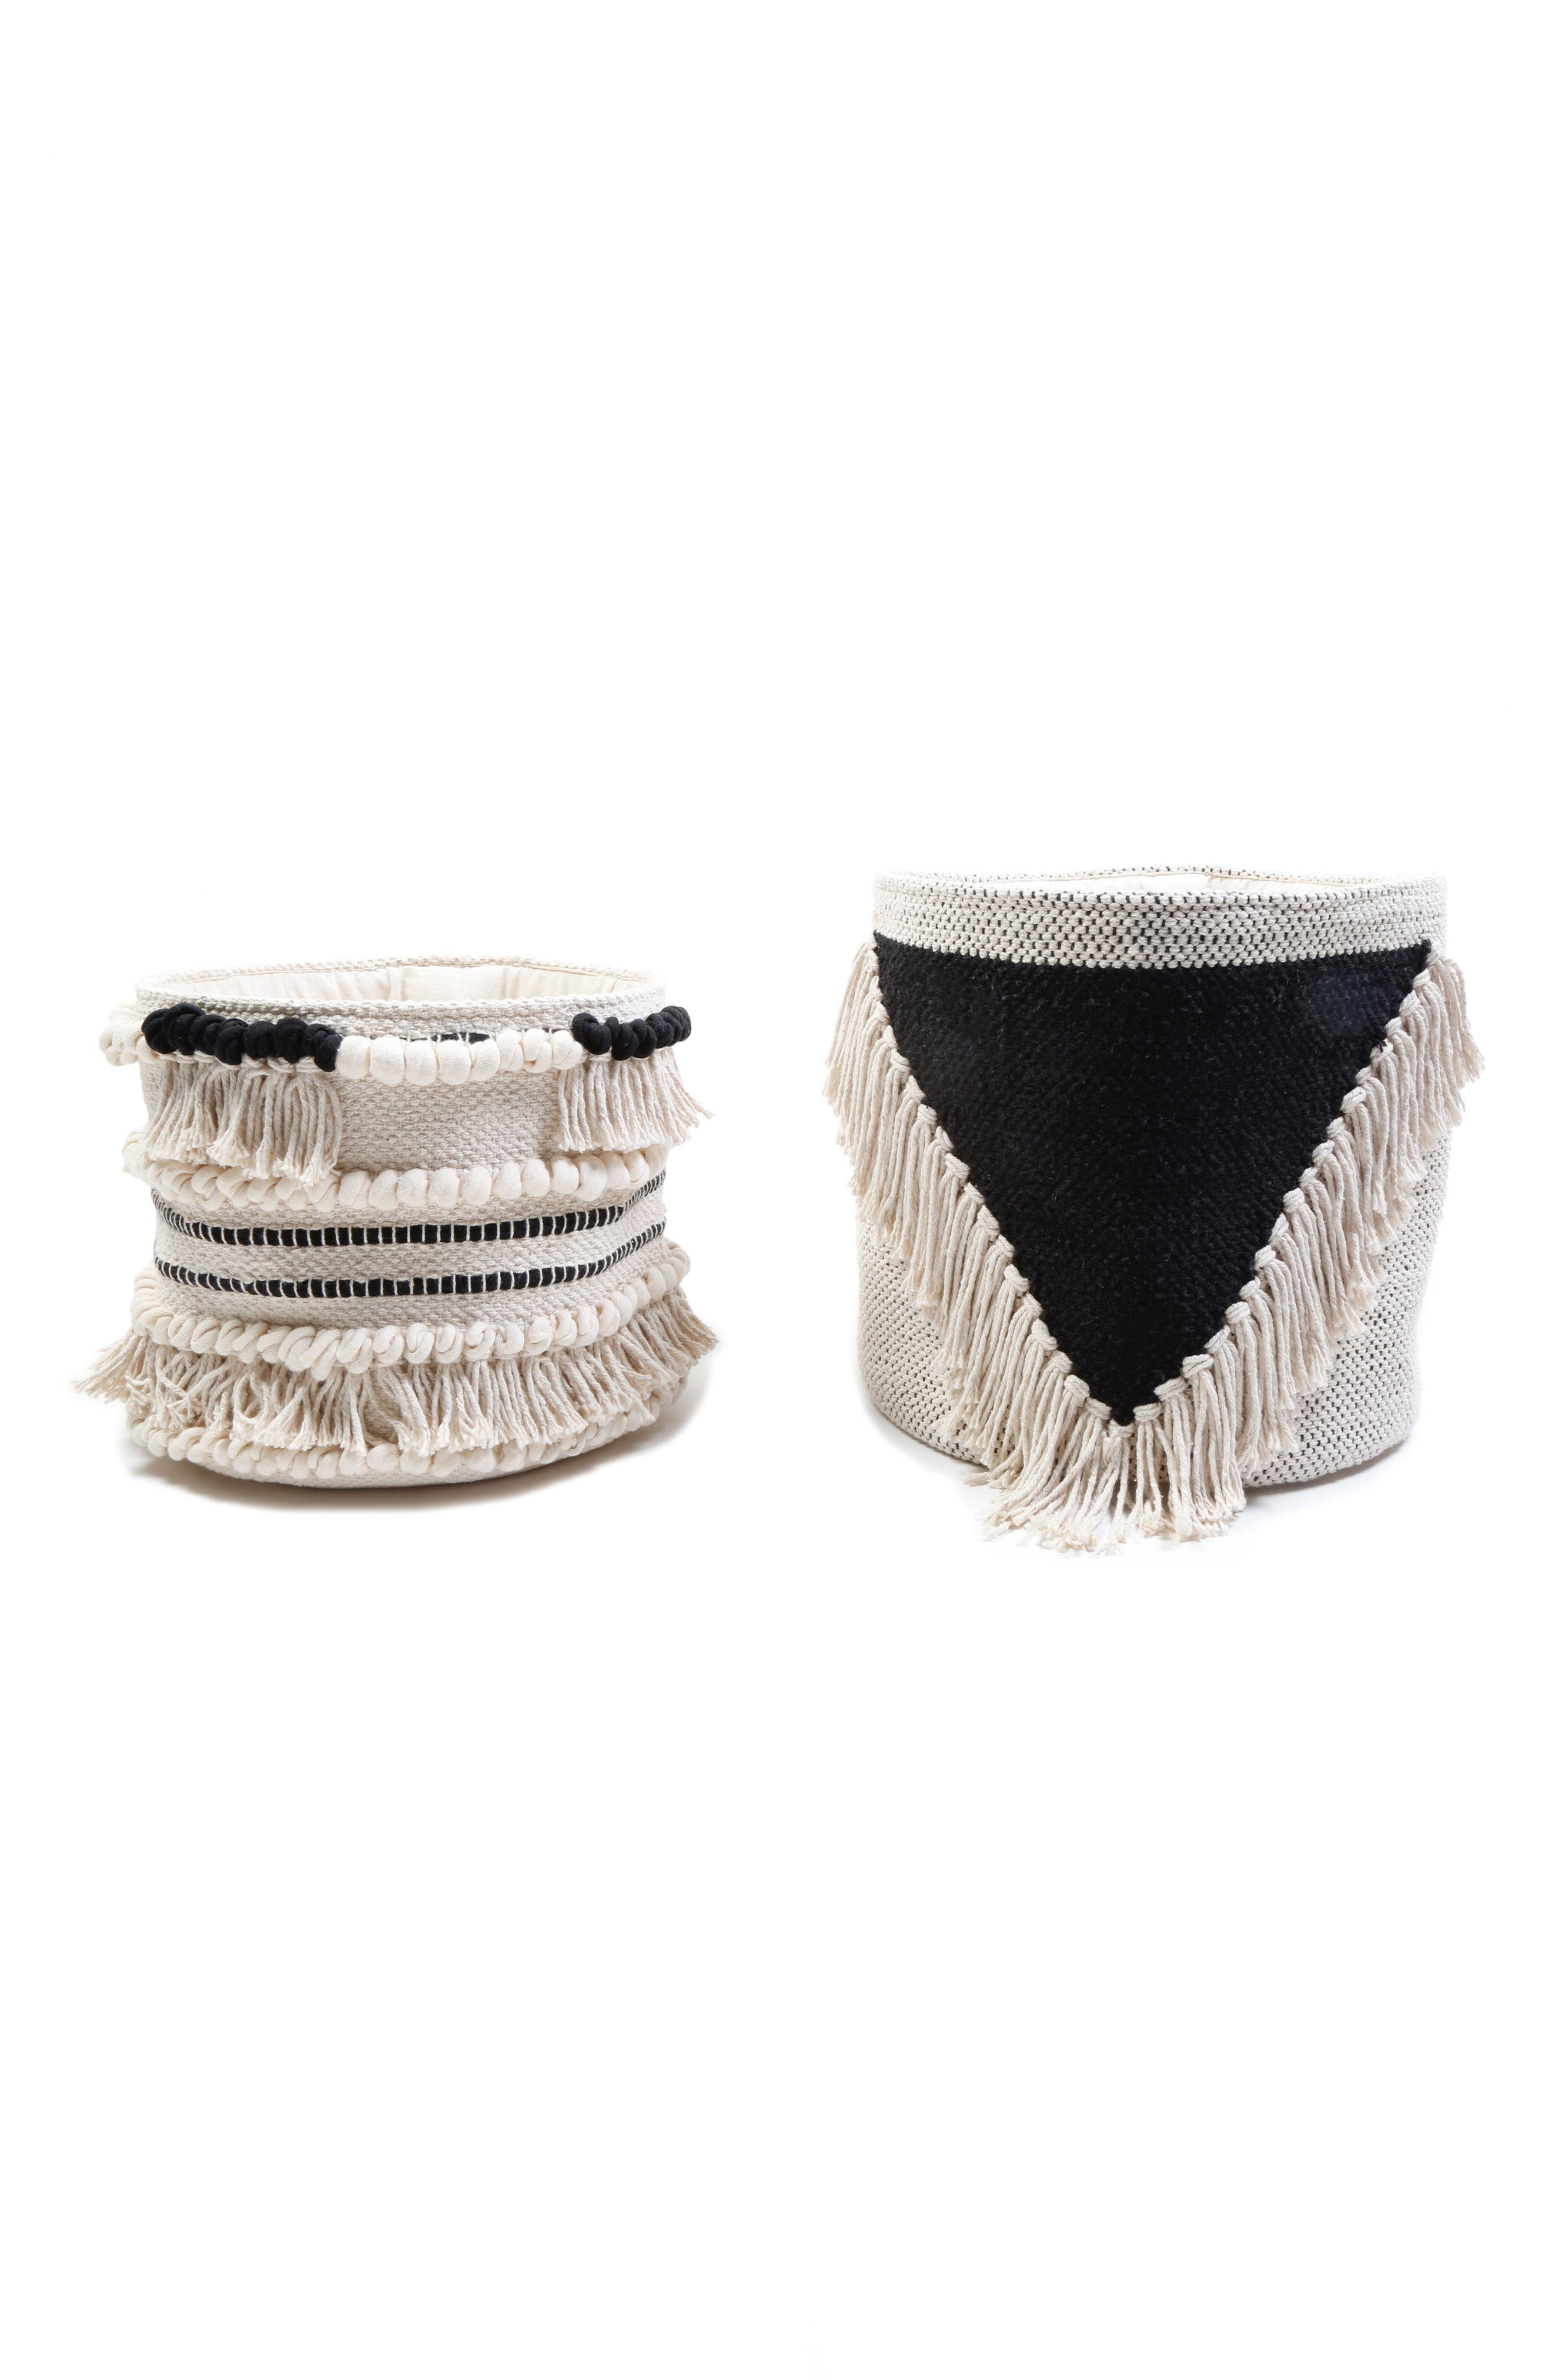 Pom Pom at Home Set of Two Woven Baskets